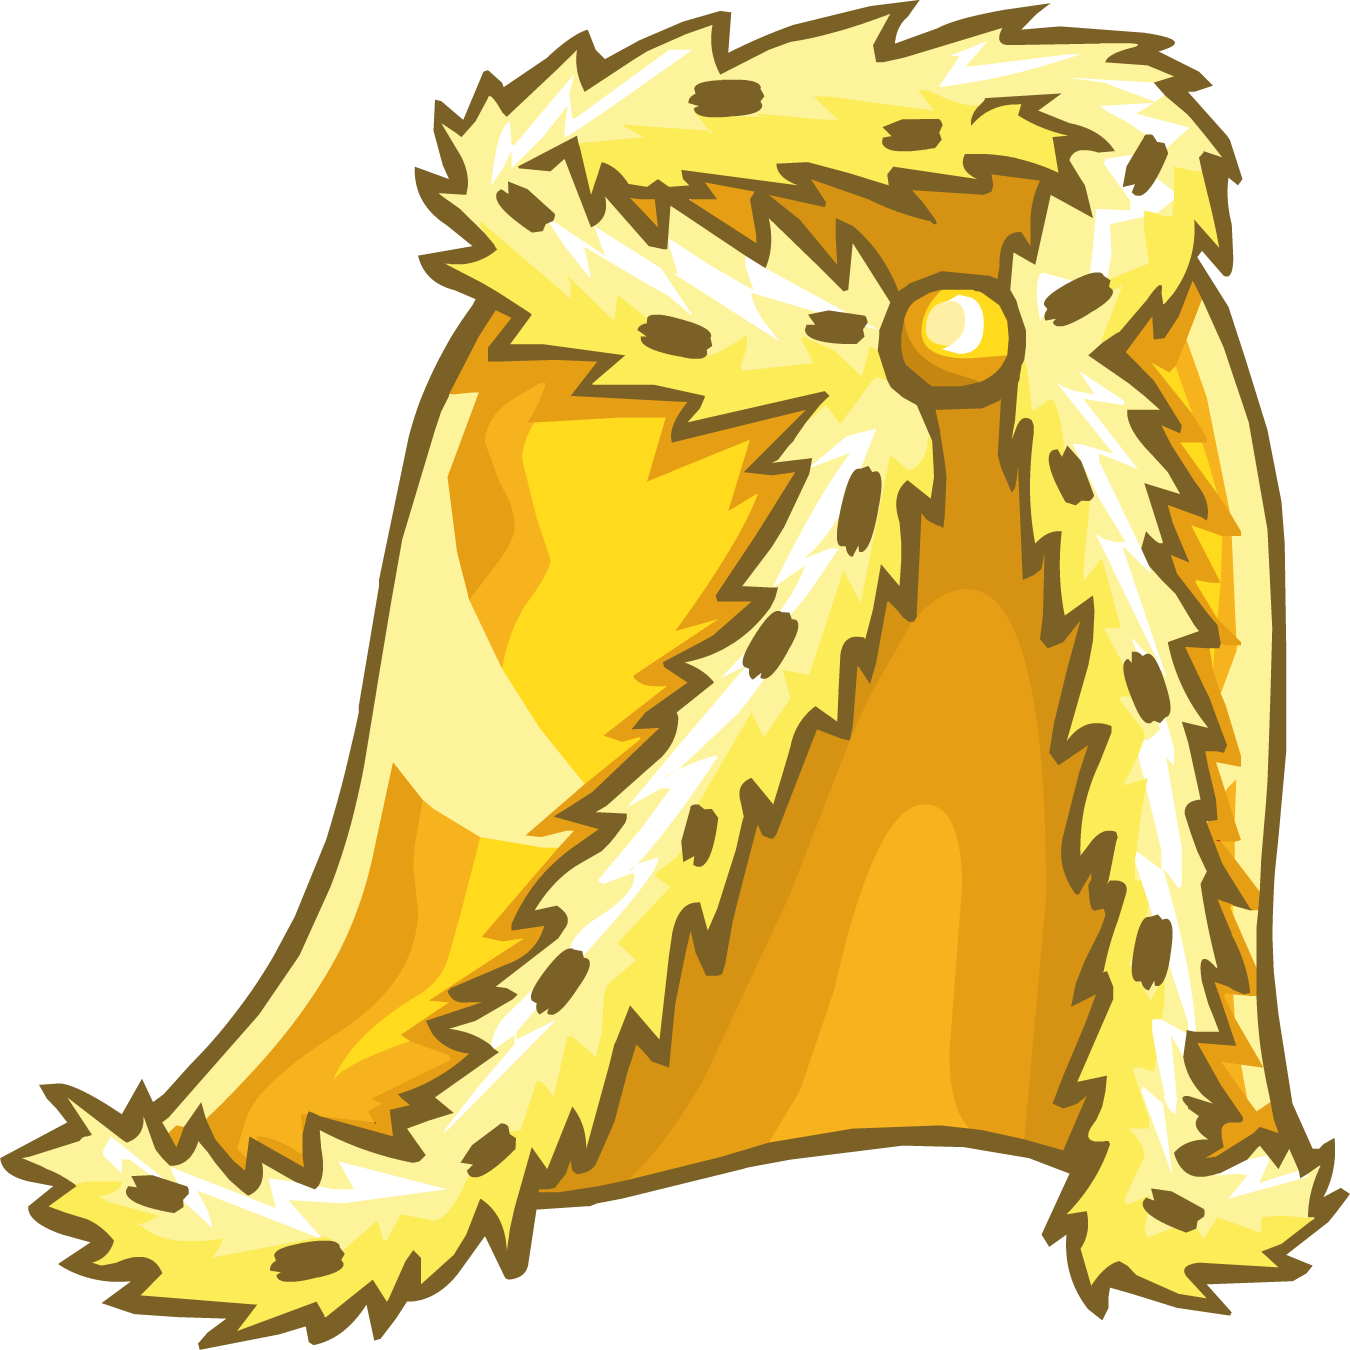 Gold cape png. Royal golden robe club